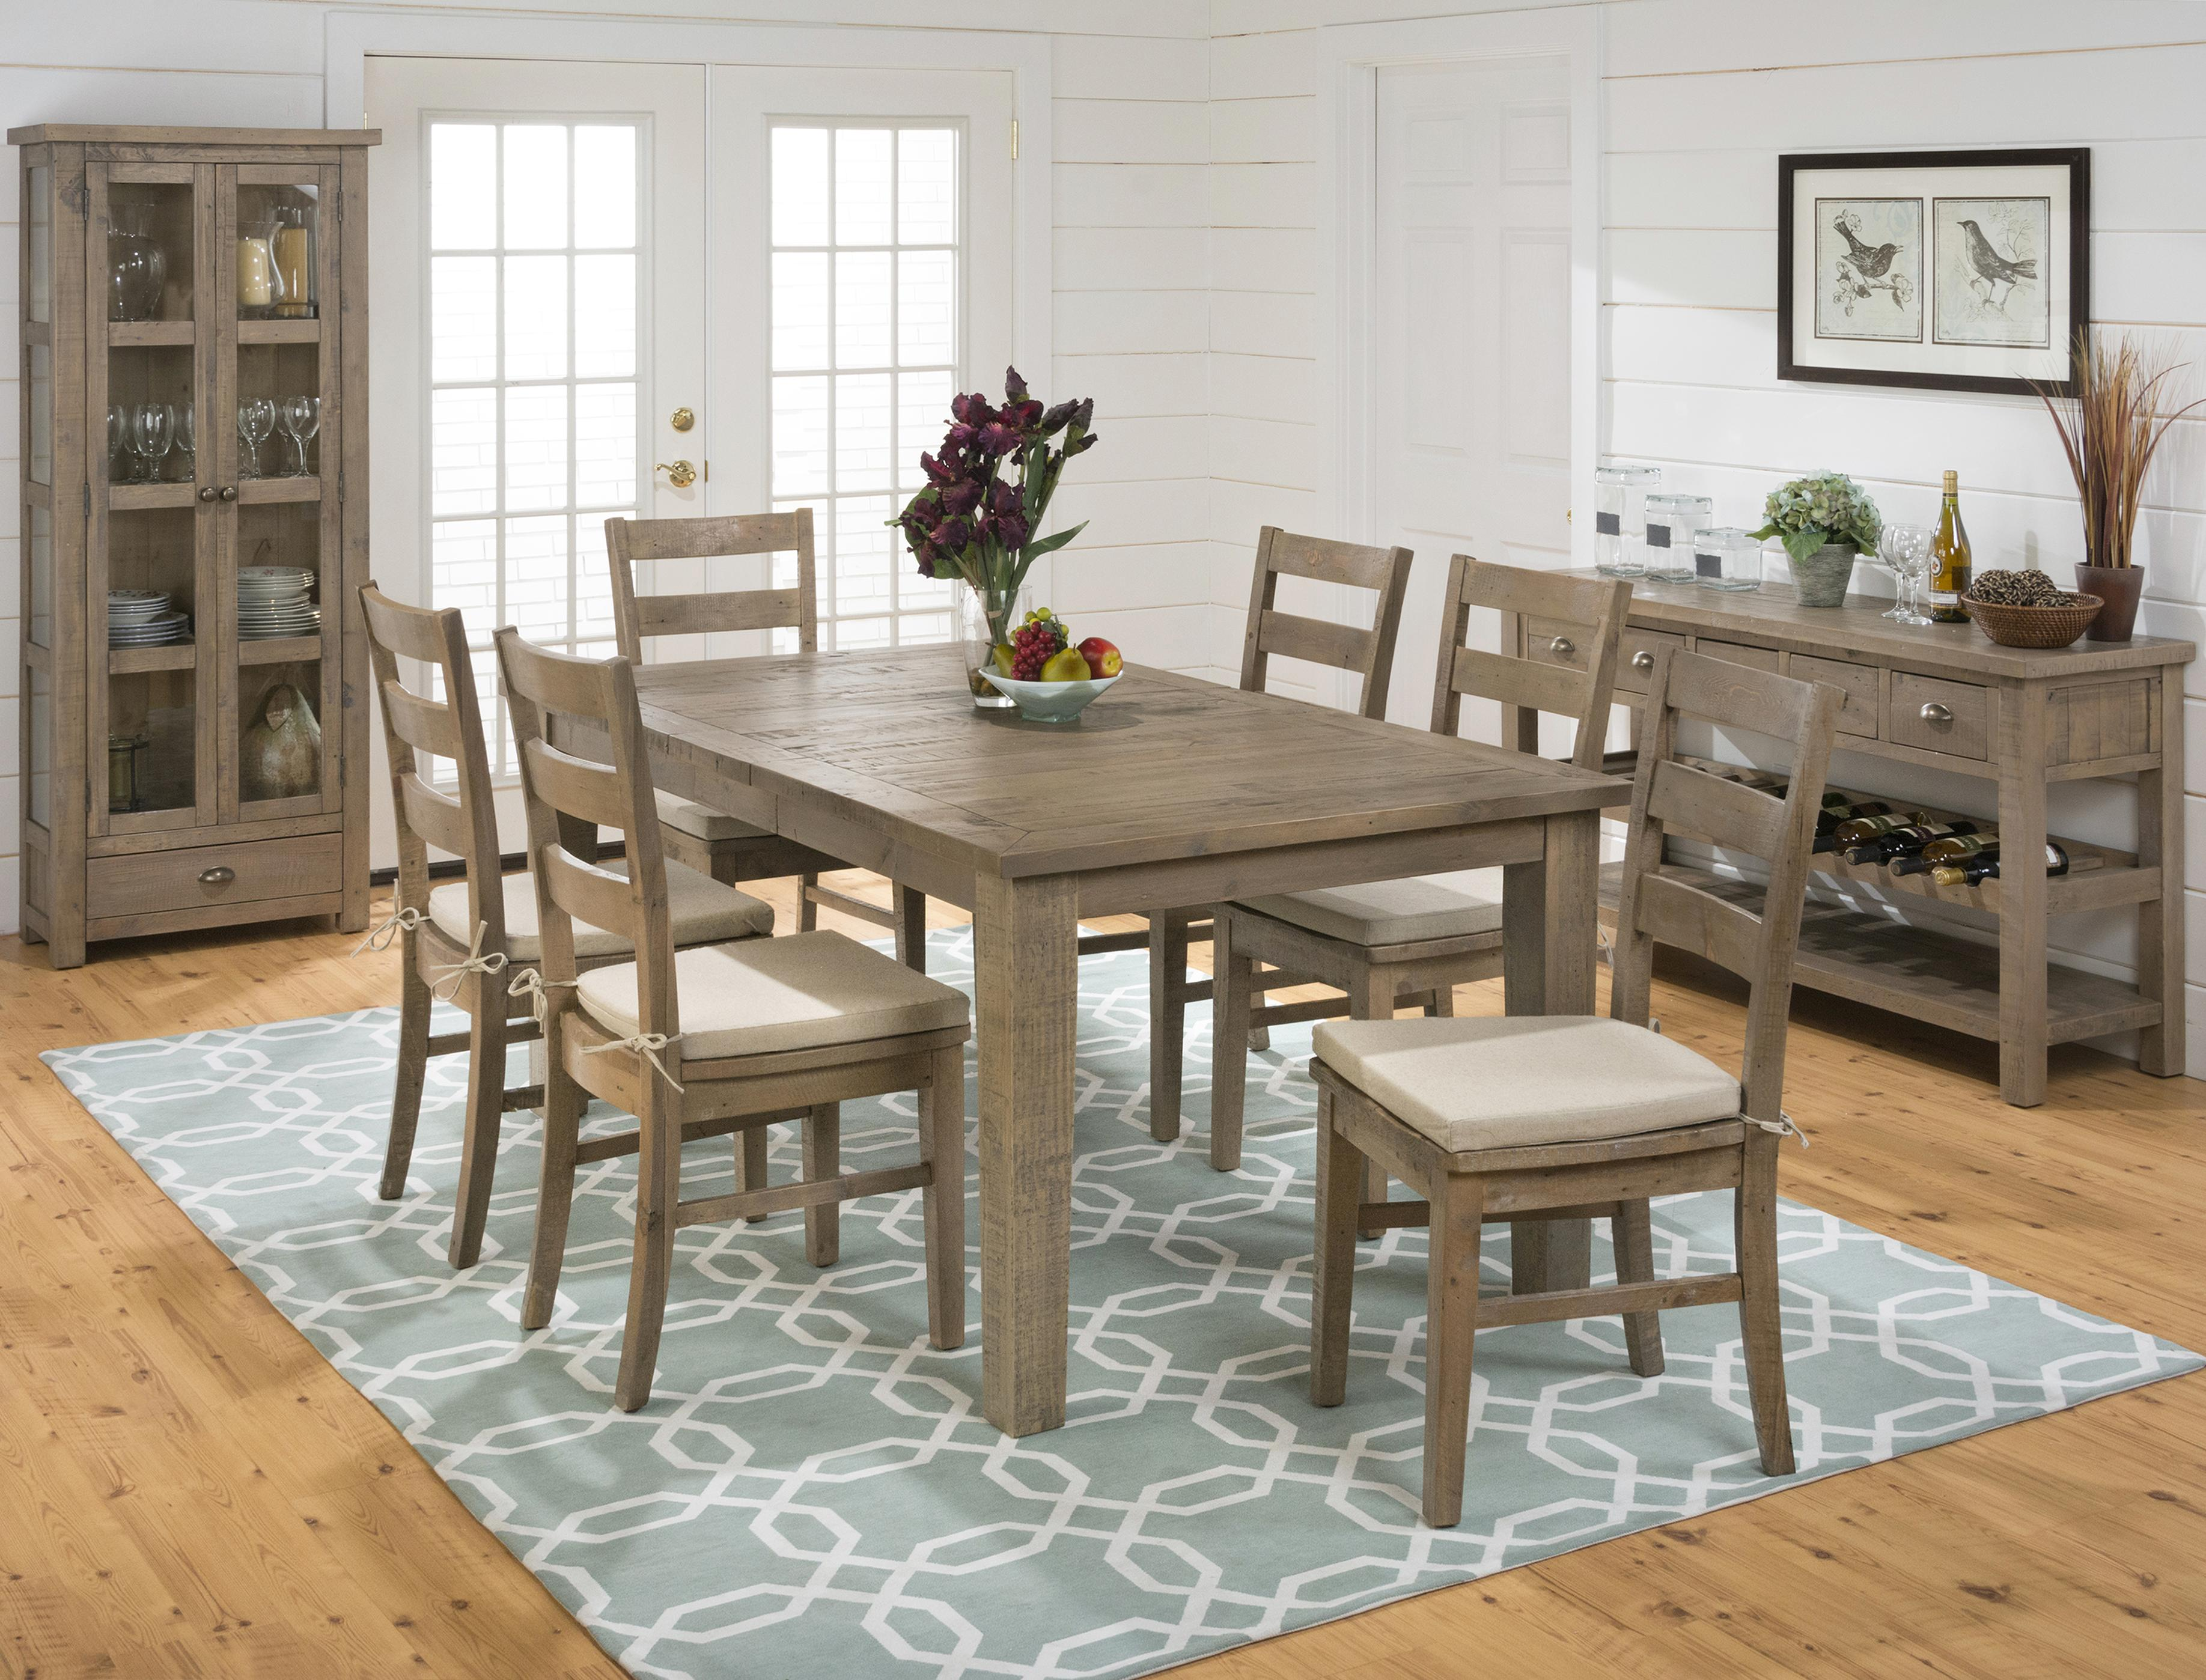 Lovely Jofran Slater Mill Pine Casual Dining Room Group   Item Number: 941 Dining  Room Group